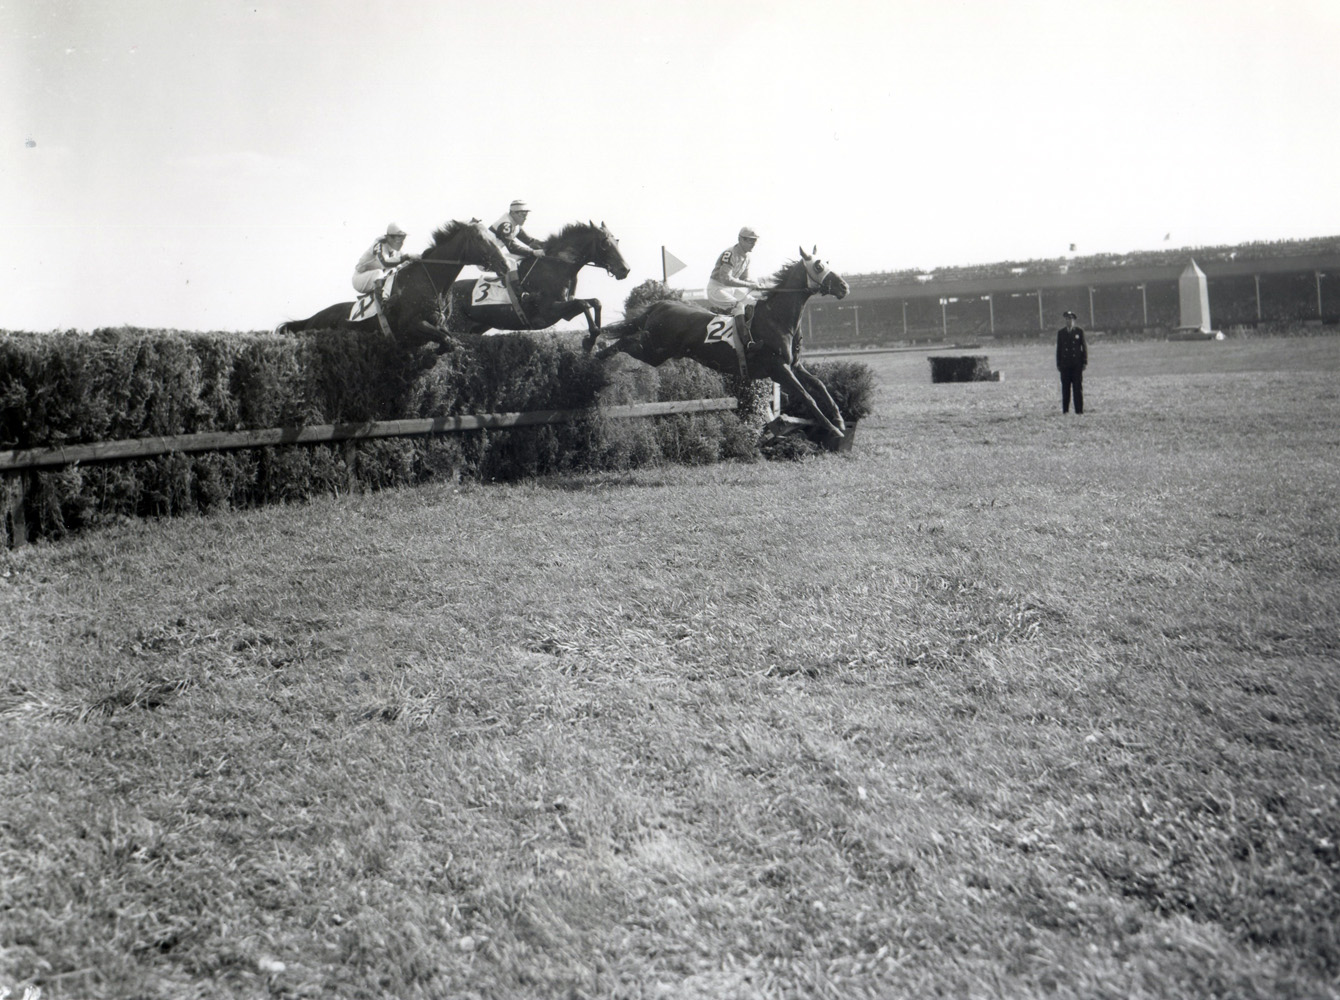 Neji (Frank Dooley Adams up) clearing a jump in the Broad Hollow Steeplechase at Belmont Park (Keeneland Library Morgan Collection/Museum Collection)